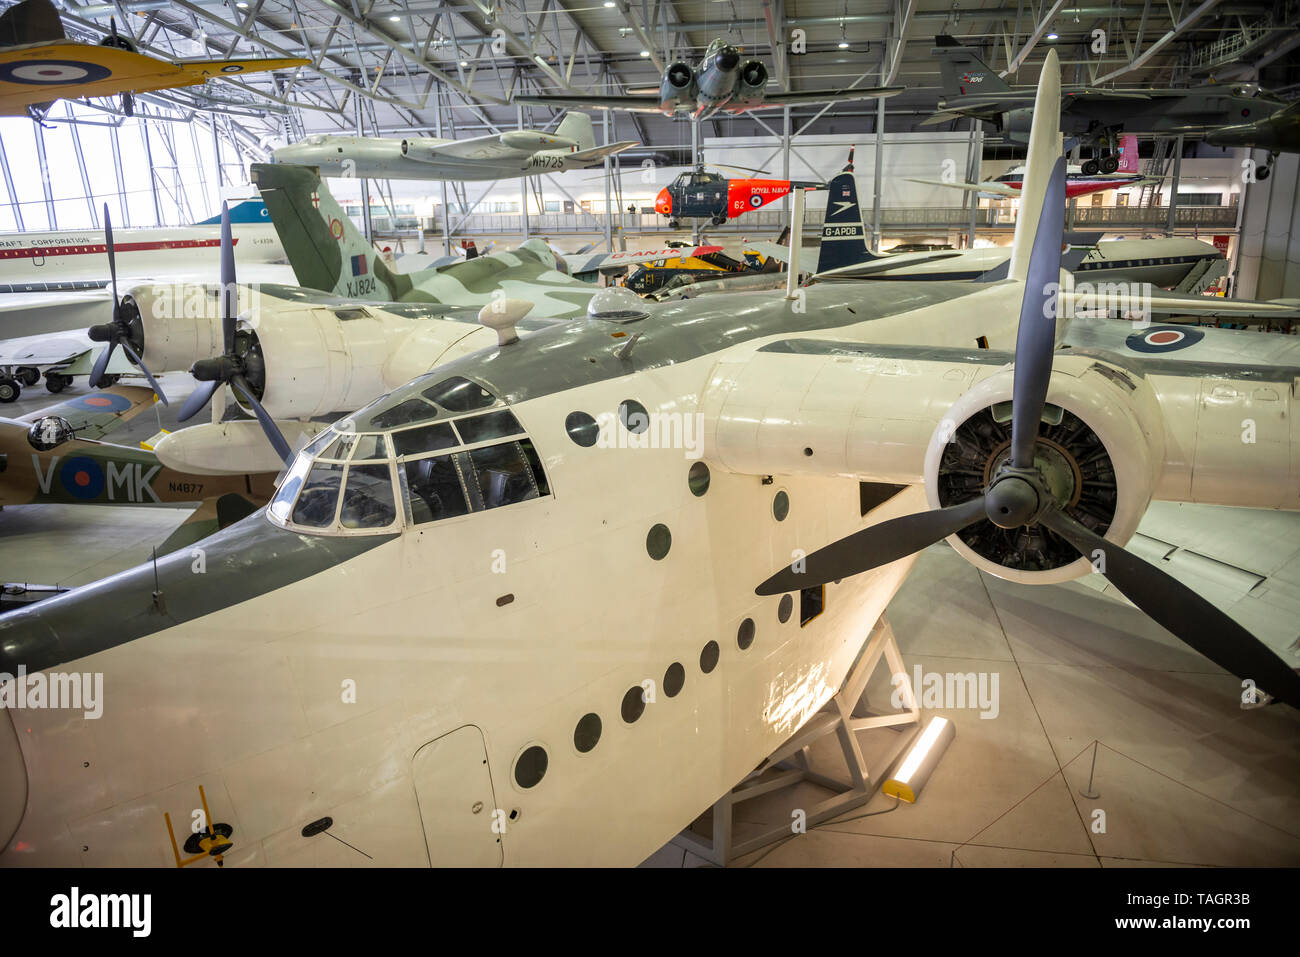 World War Two Short Sunderland flying boat at the Imperial War Museum, Duxford, Cambridgeshire, UK - Stock Image